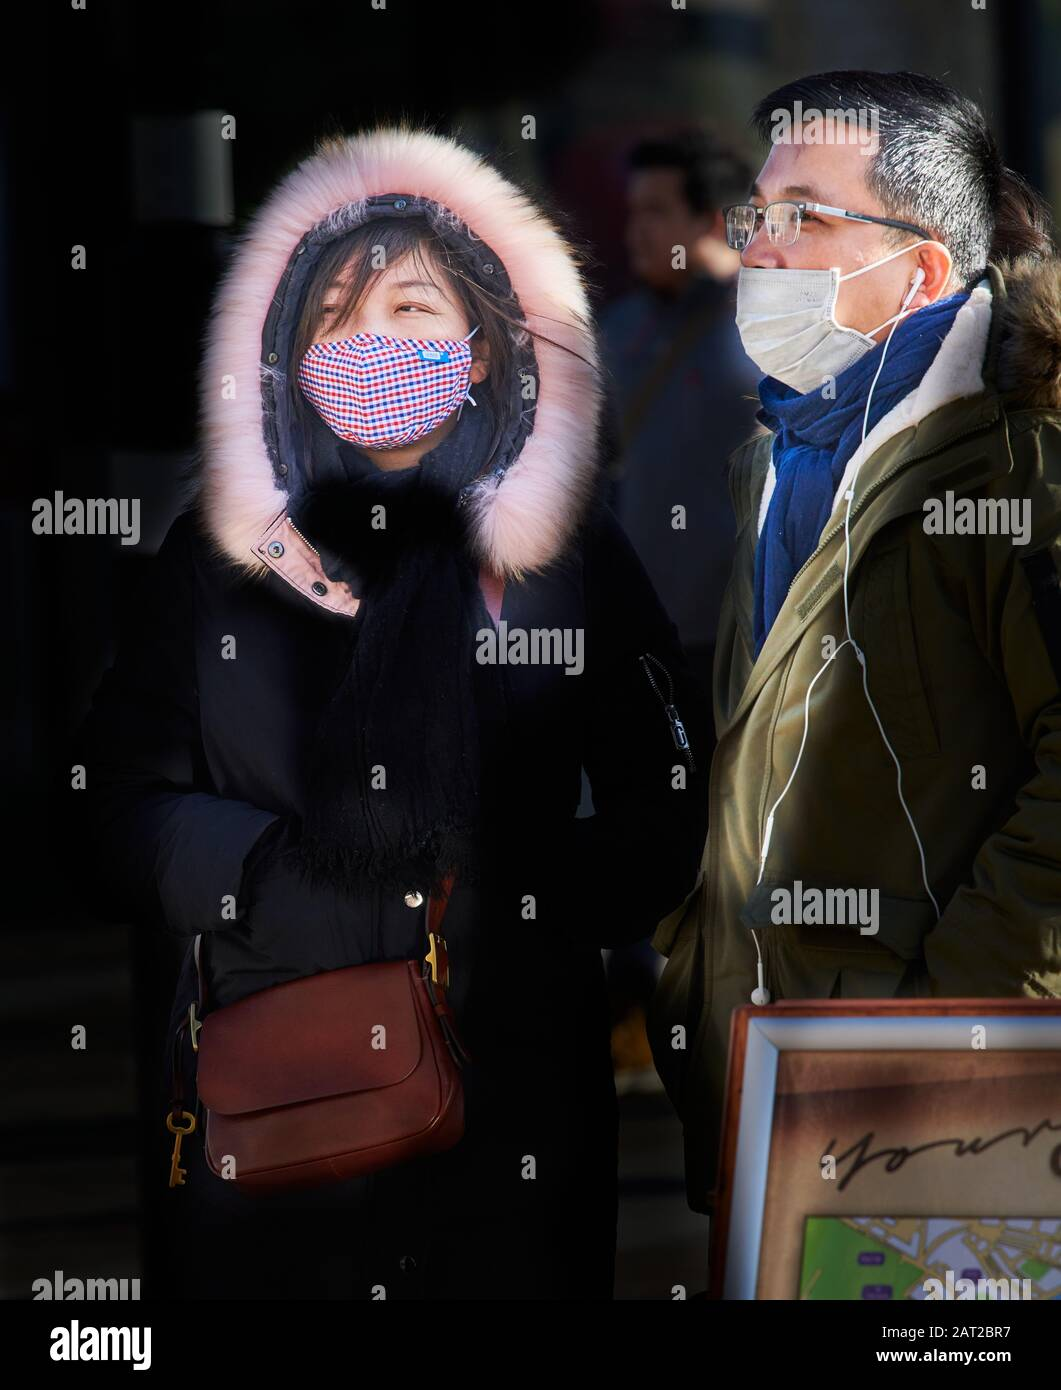 Face mask worn by chinese tourists outside the railway station in Cambridge, England, on 30 january 2020, to prevent catching the coronavirus flu. Stock Photo